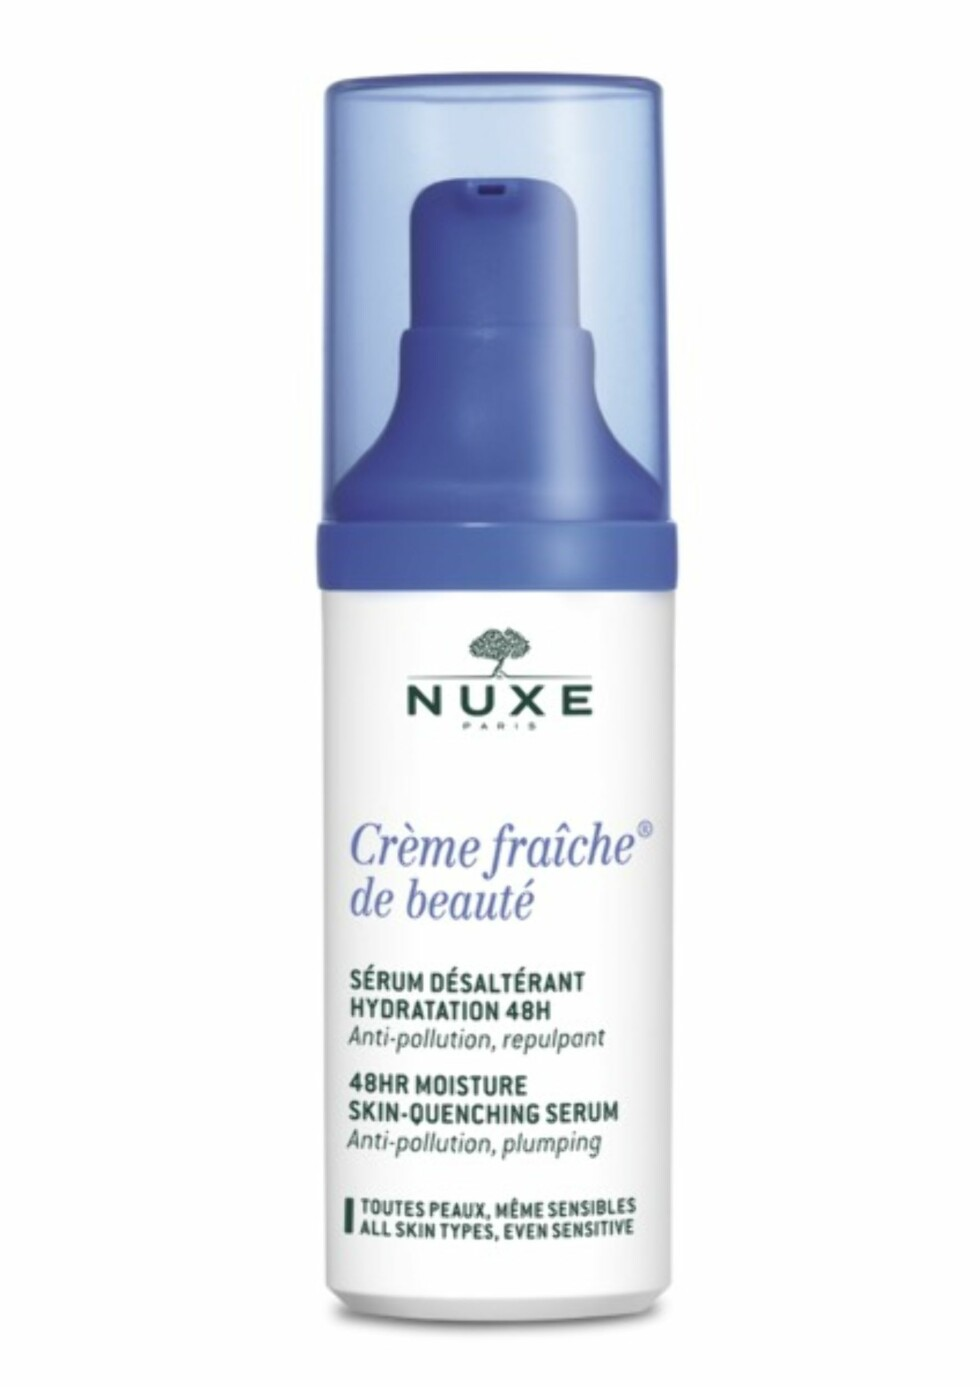 Serum fra | NUXE | https://www.apotek1.no/produkter/nuxe-cr-fraic-48-hyd-boost-ser-855953p?utm_source=KK.no&utm_medium=Advetorial&utm_campaign=Nuxe%20Creme%20Fraiche&utm_term=855953